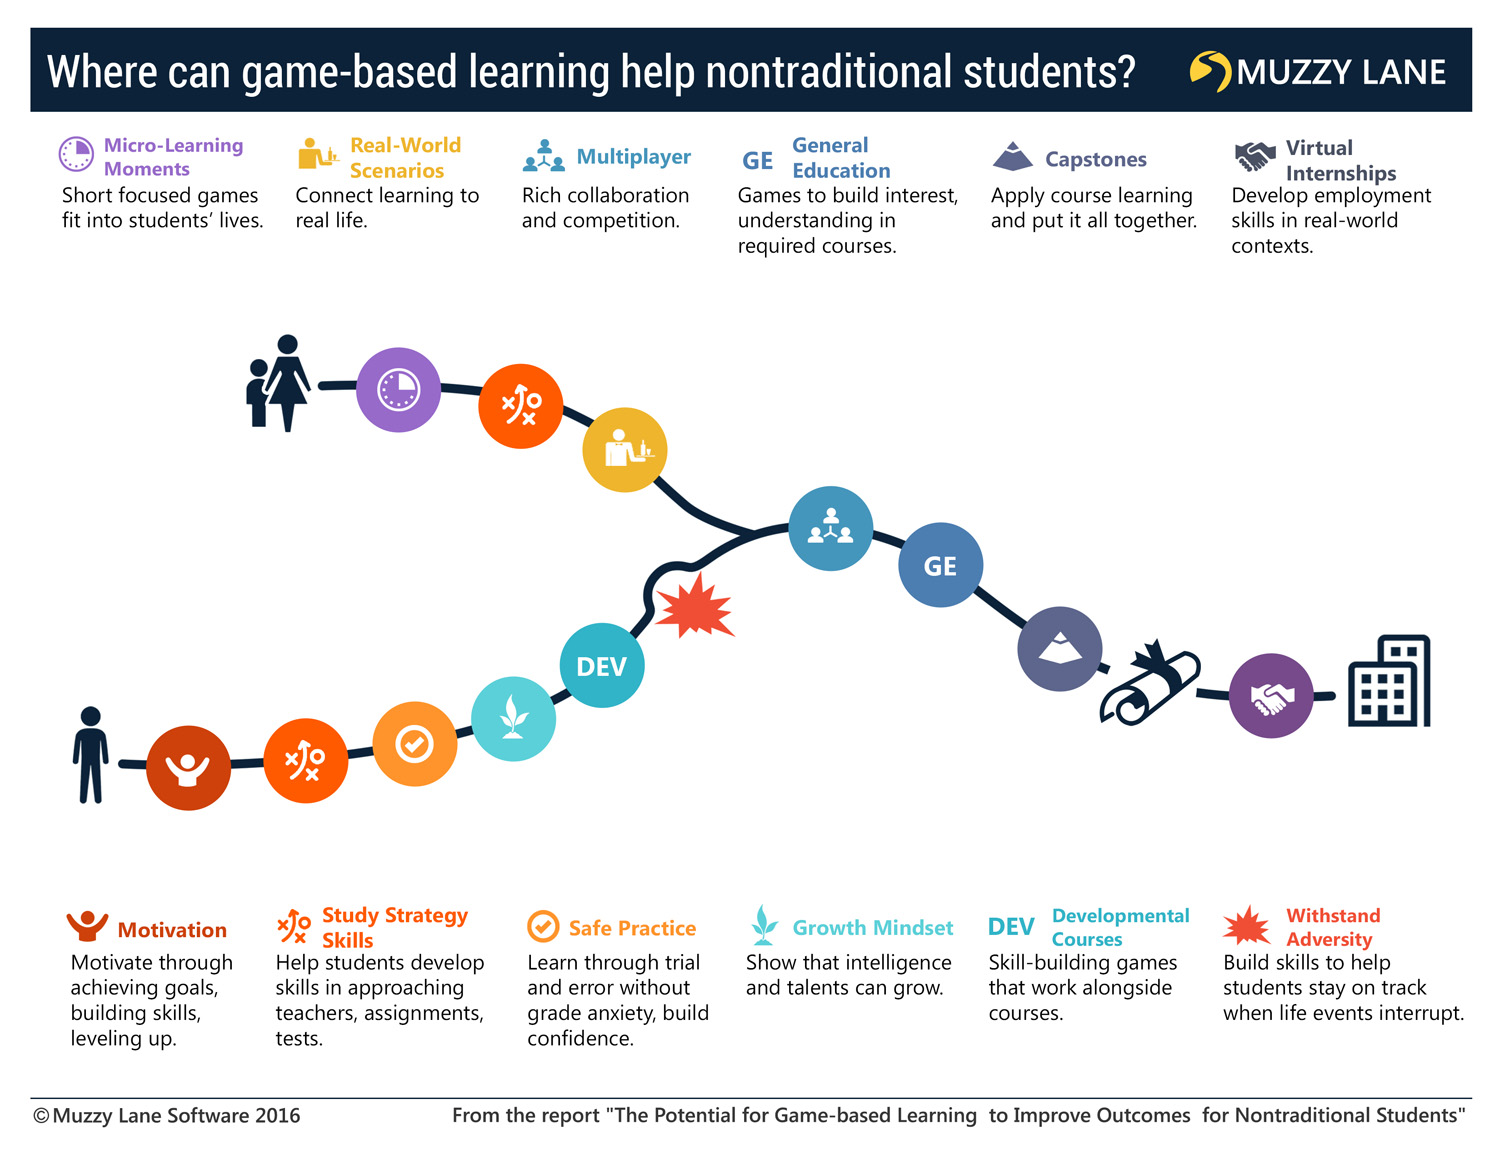 Journey Map showing where in the student journey GBL has the potential for impact.